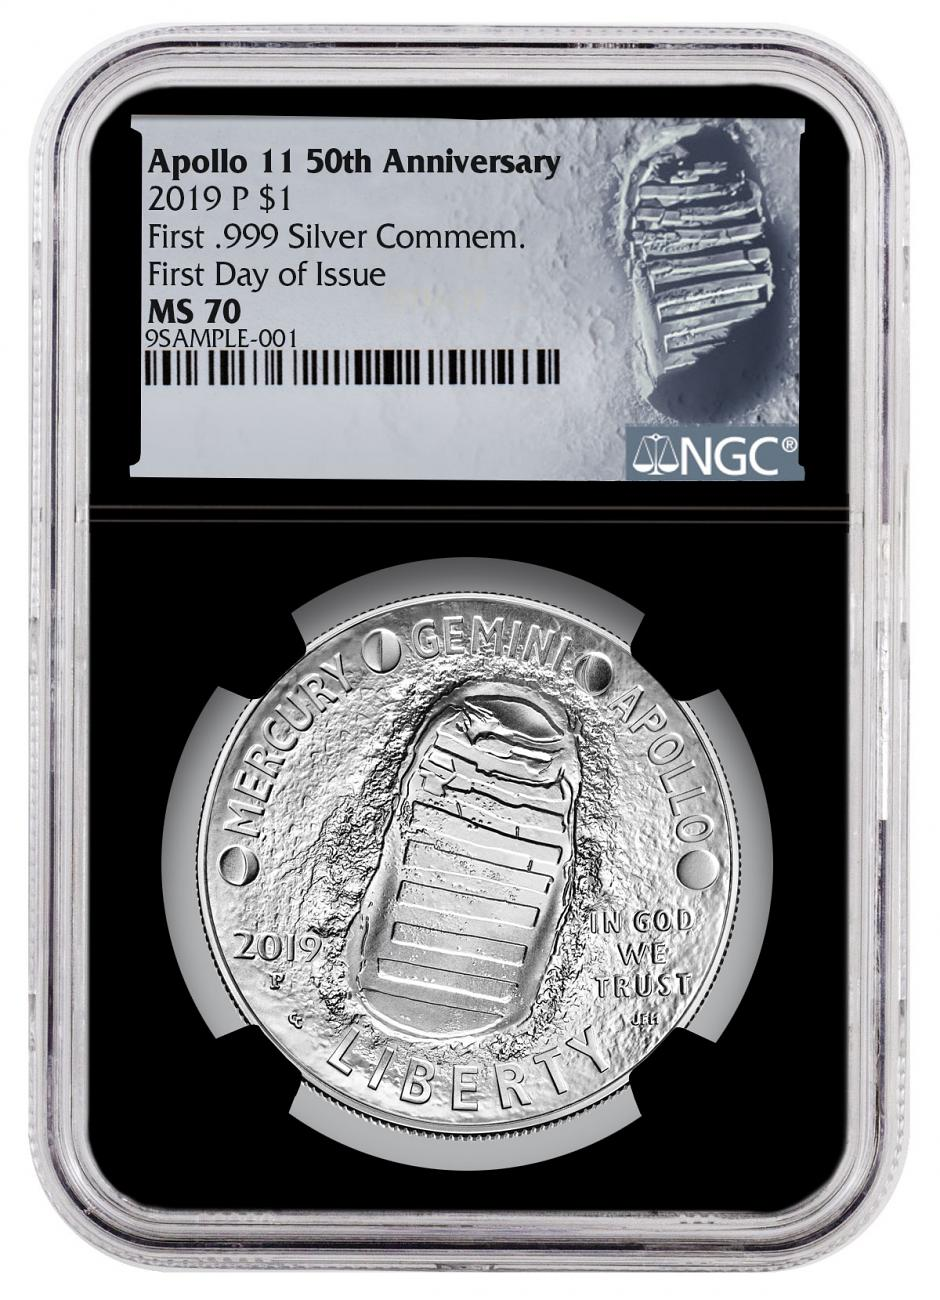 2019-P Apollo 11 50th Anniversary Commemorative Silver Dollar Coin NGC MS70 FDI Black Core Holder Moon Label